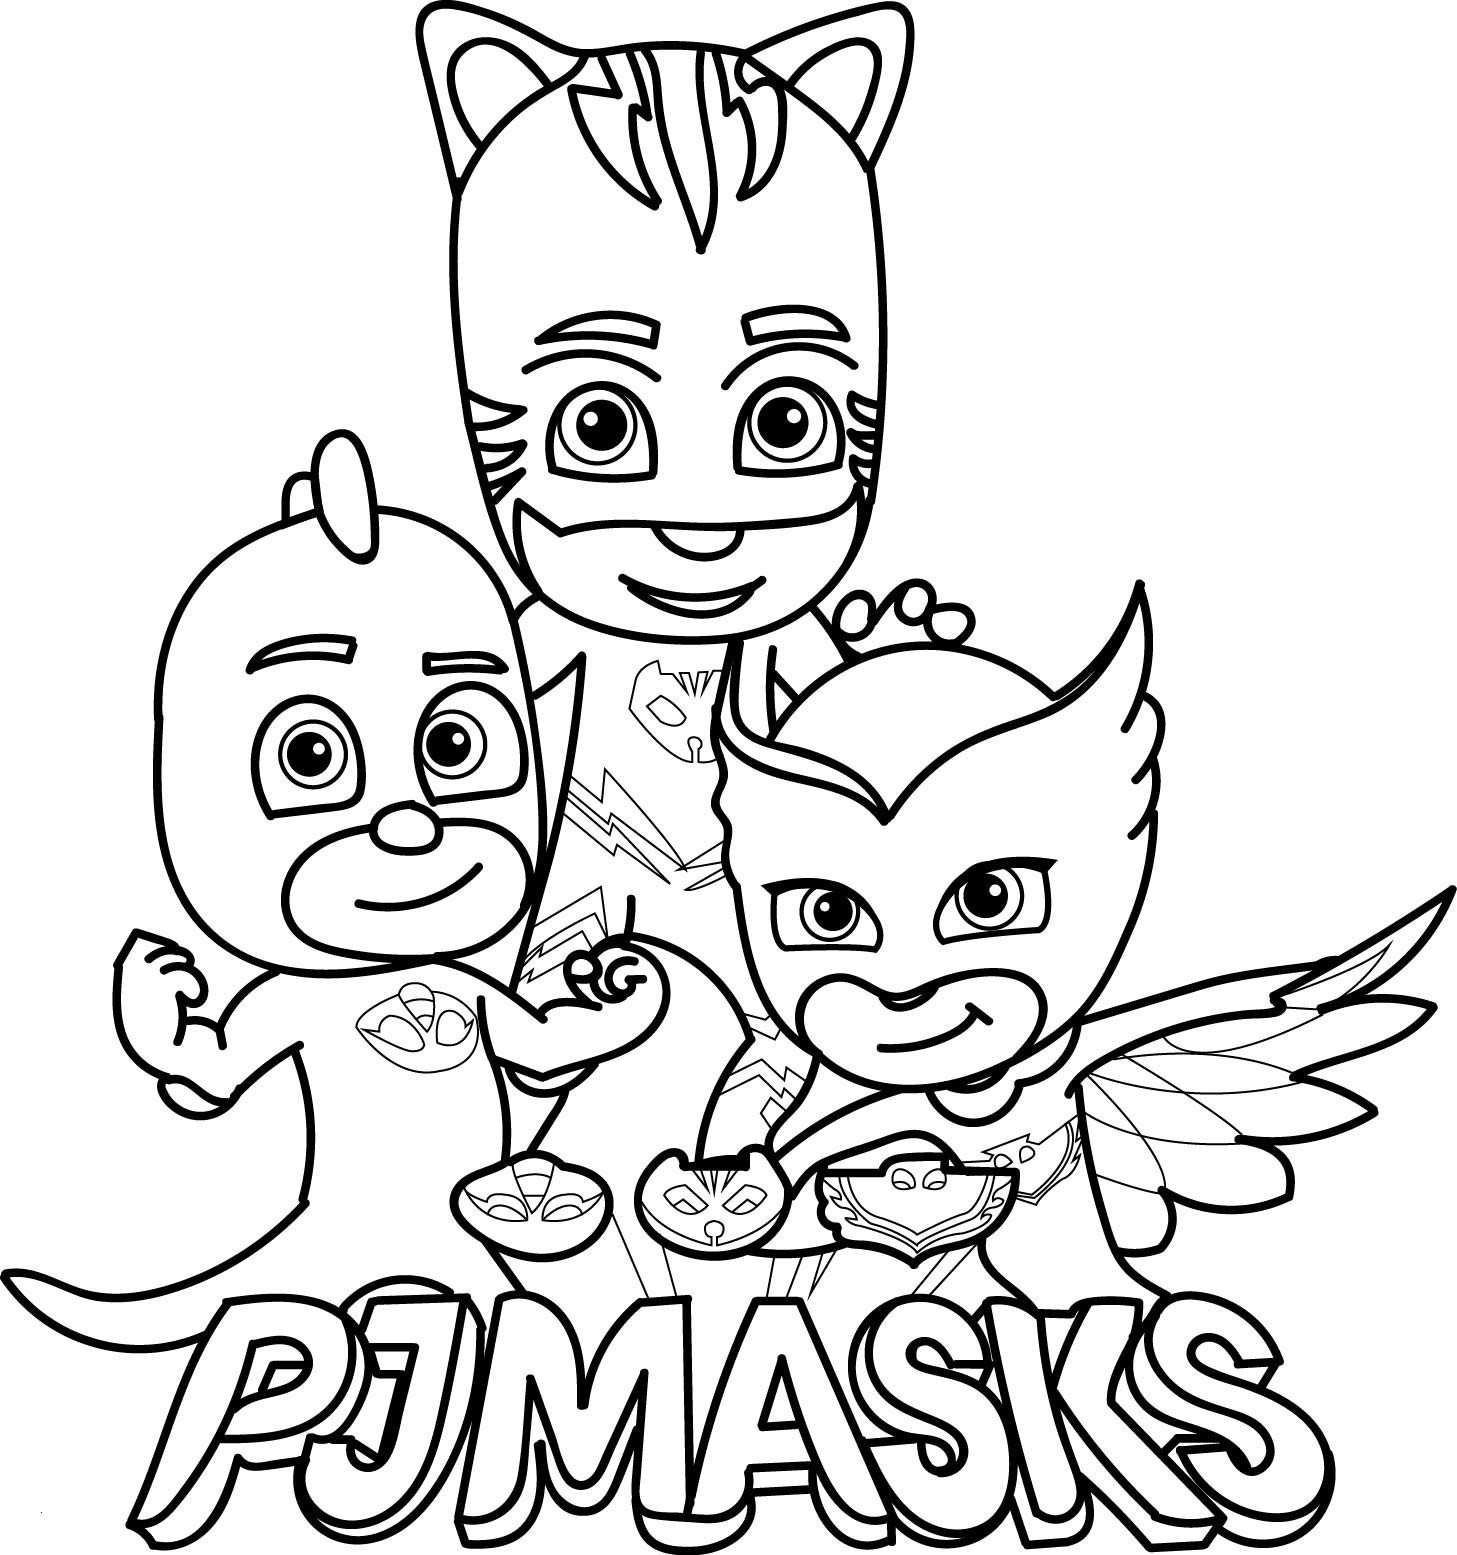 Pj Masks Ausmalbilder Genial Chalk Coloring Pages Beautiful Crayola Kids Paint Inspirational Bilder